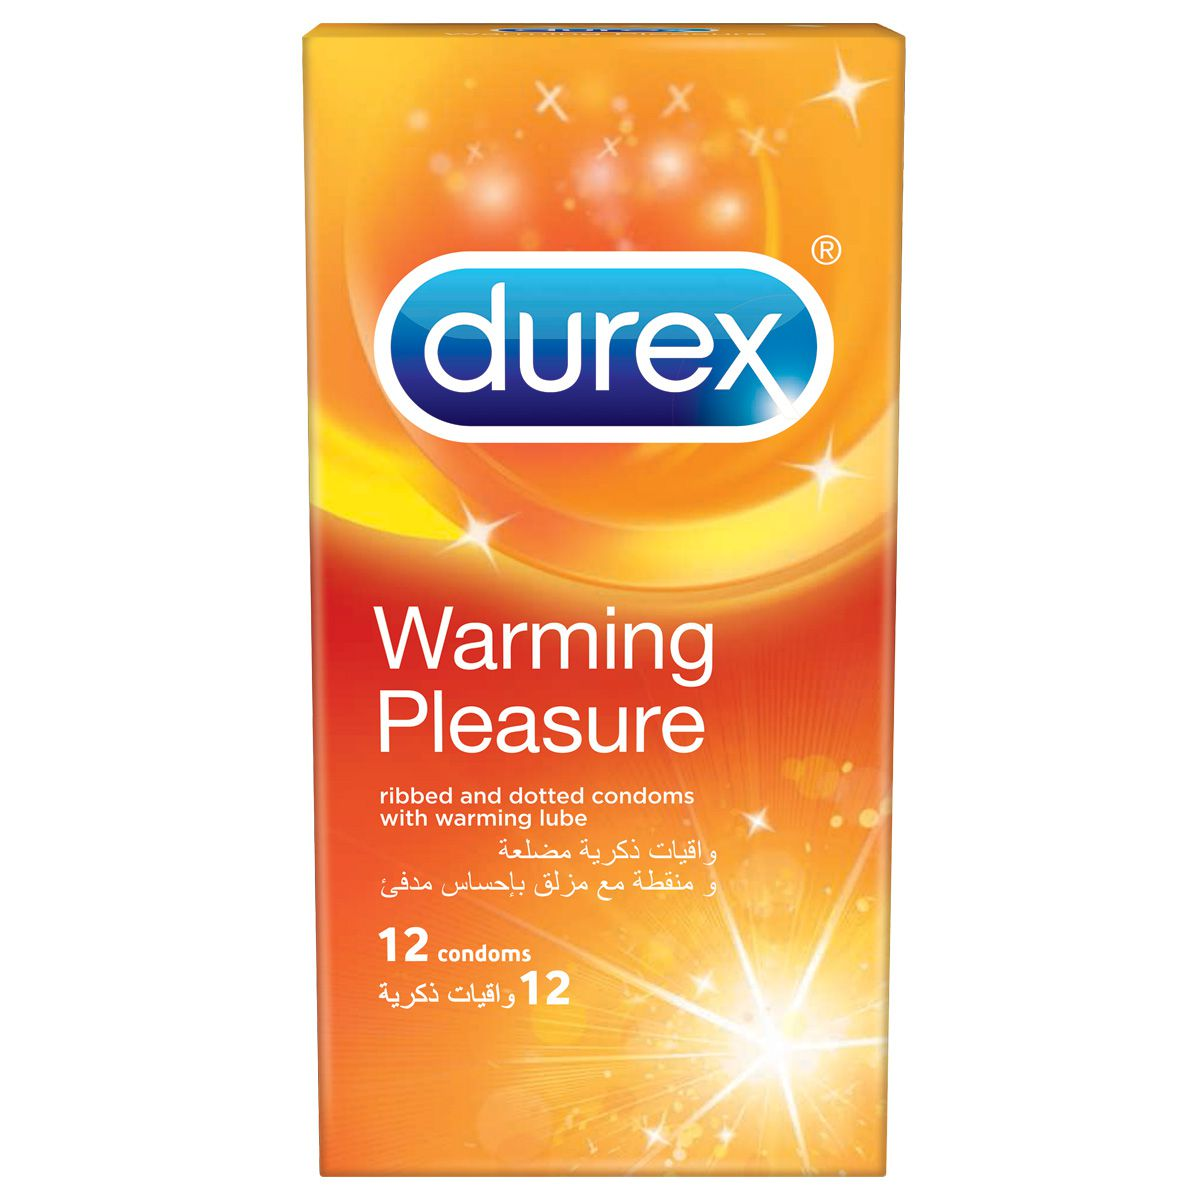 Condom: species. Types of condoms Contex and Durex